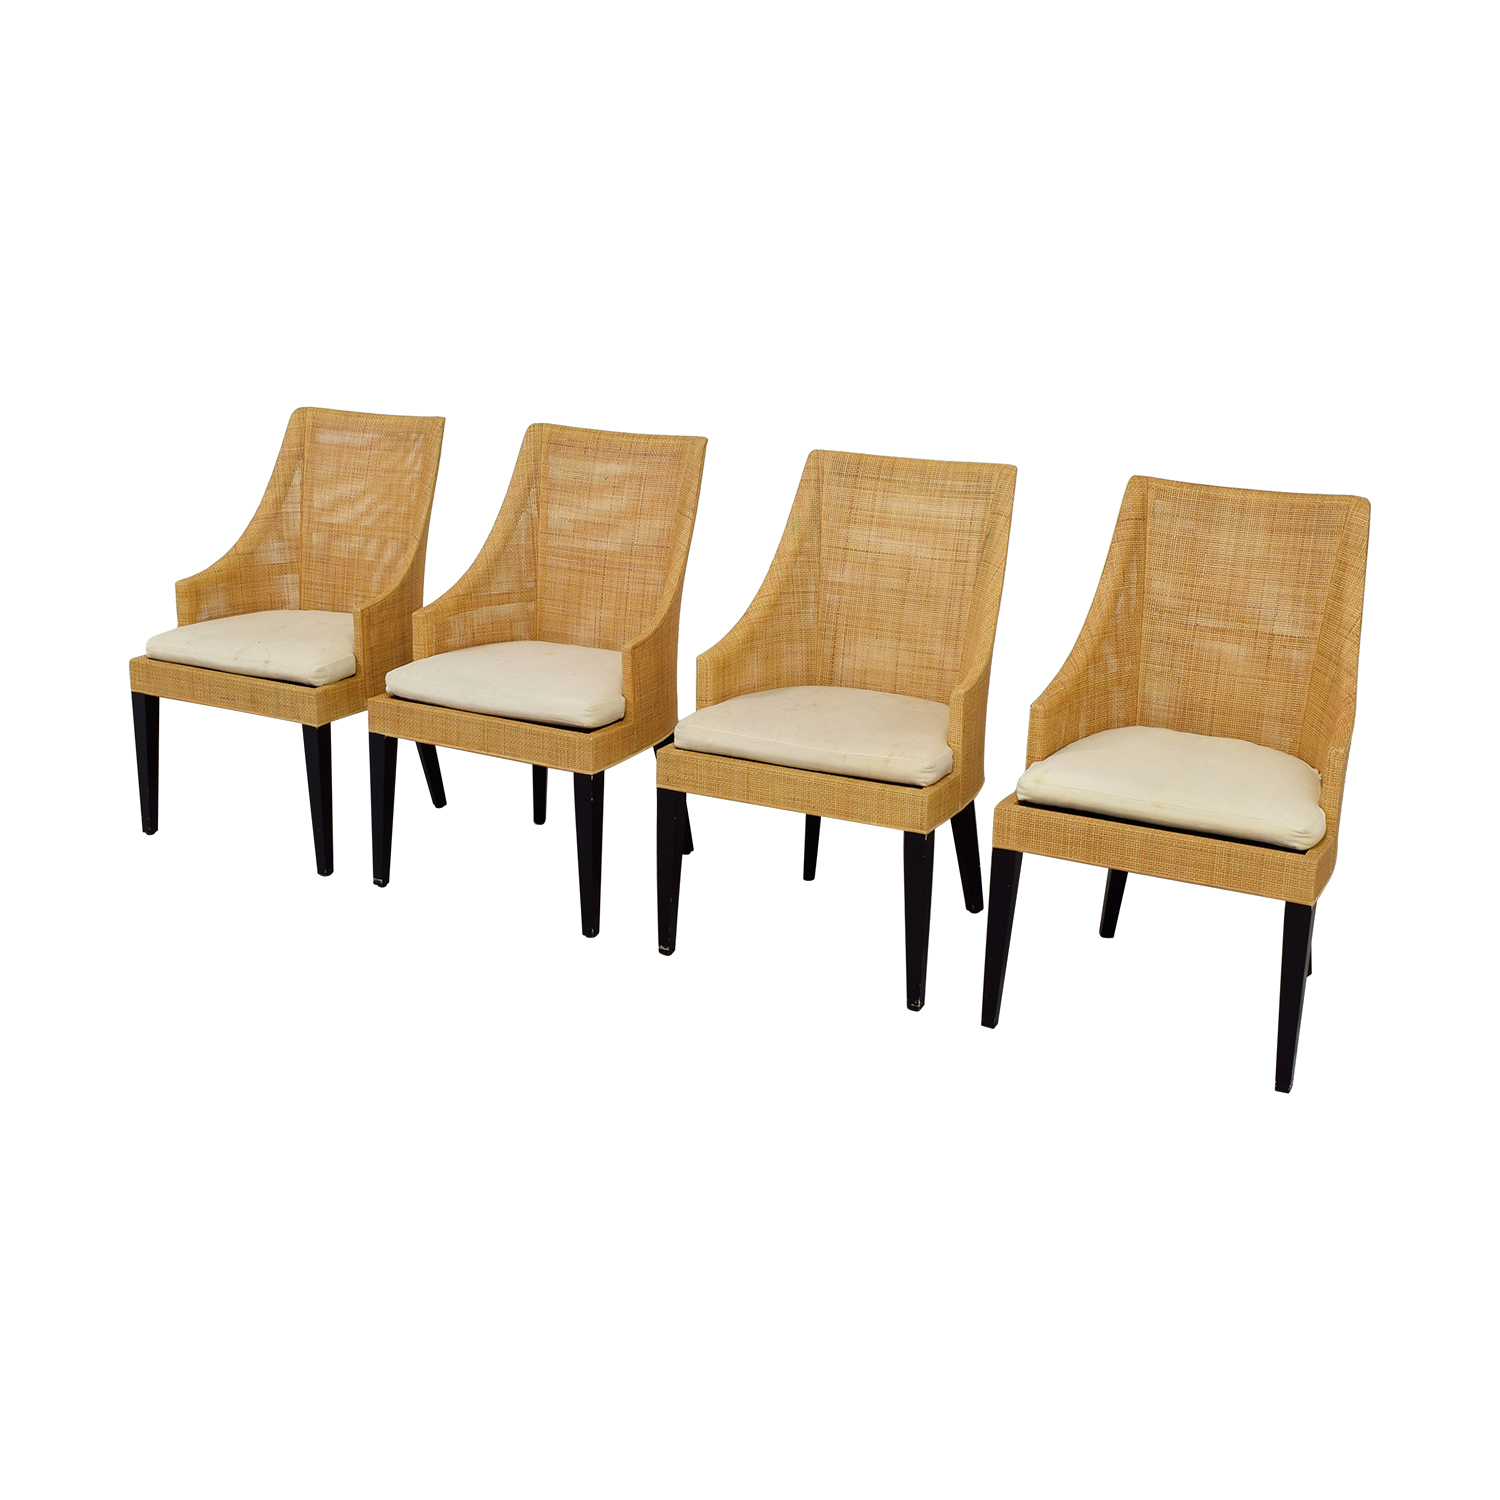 West Elm Dining Chairs / Chairs